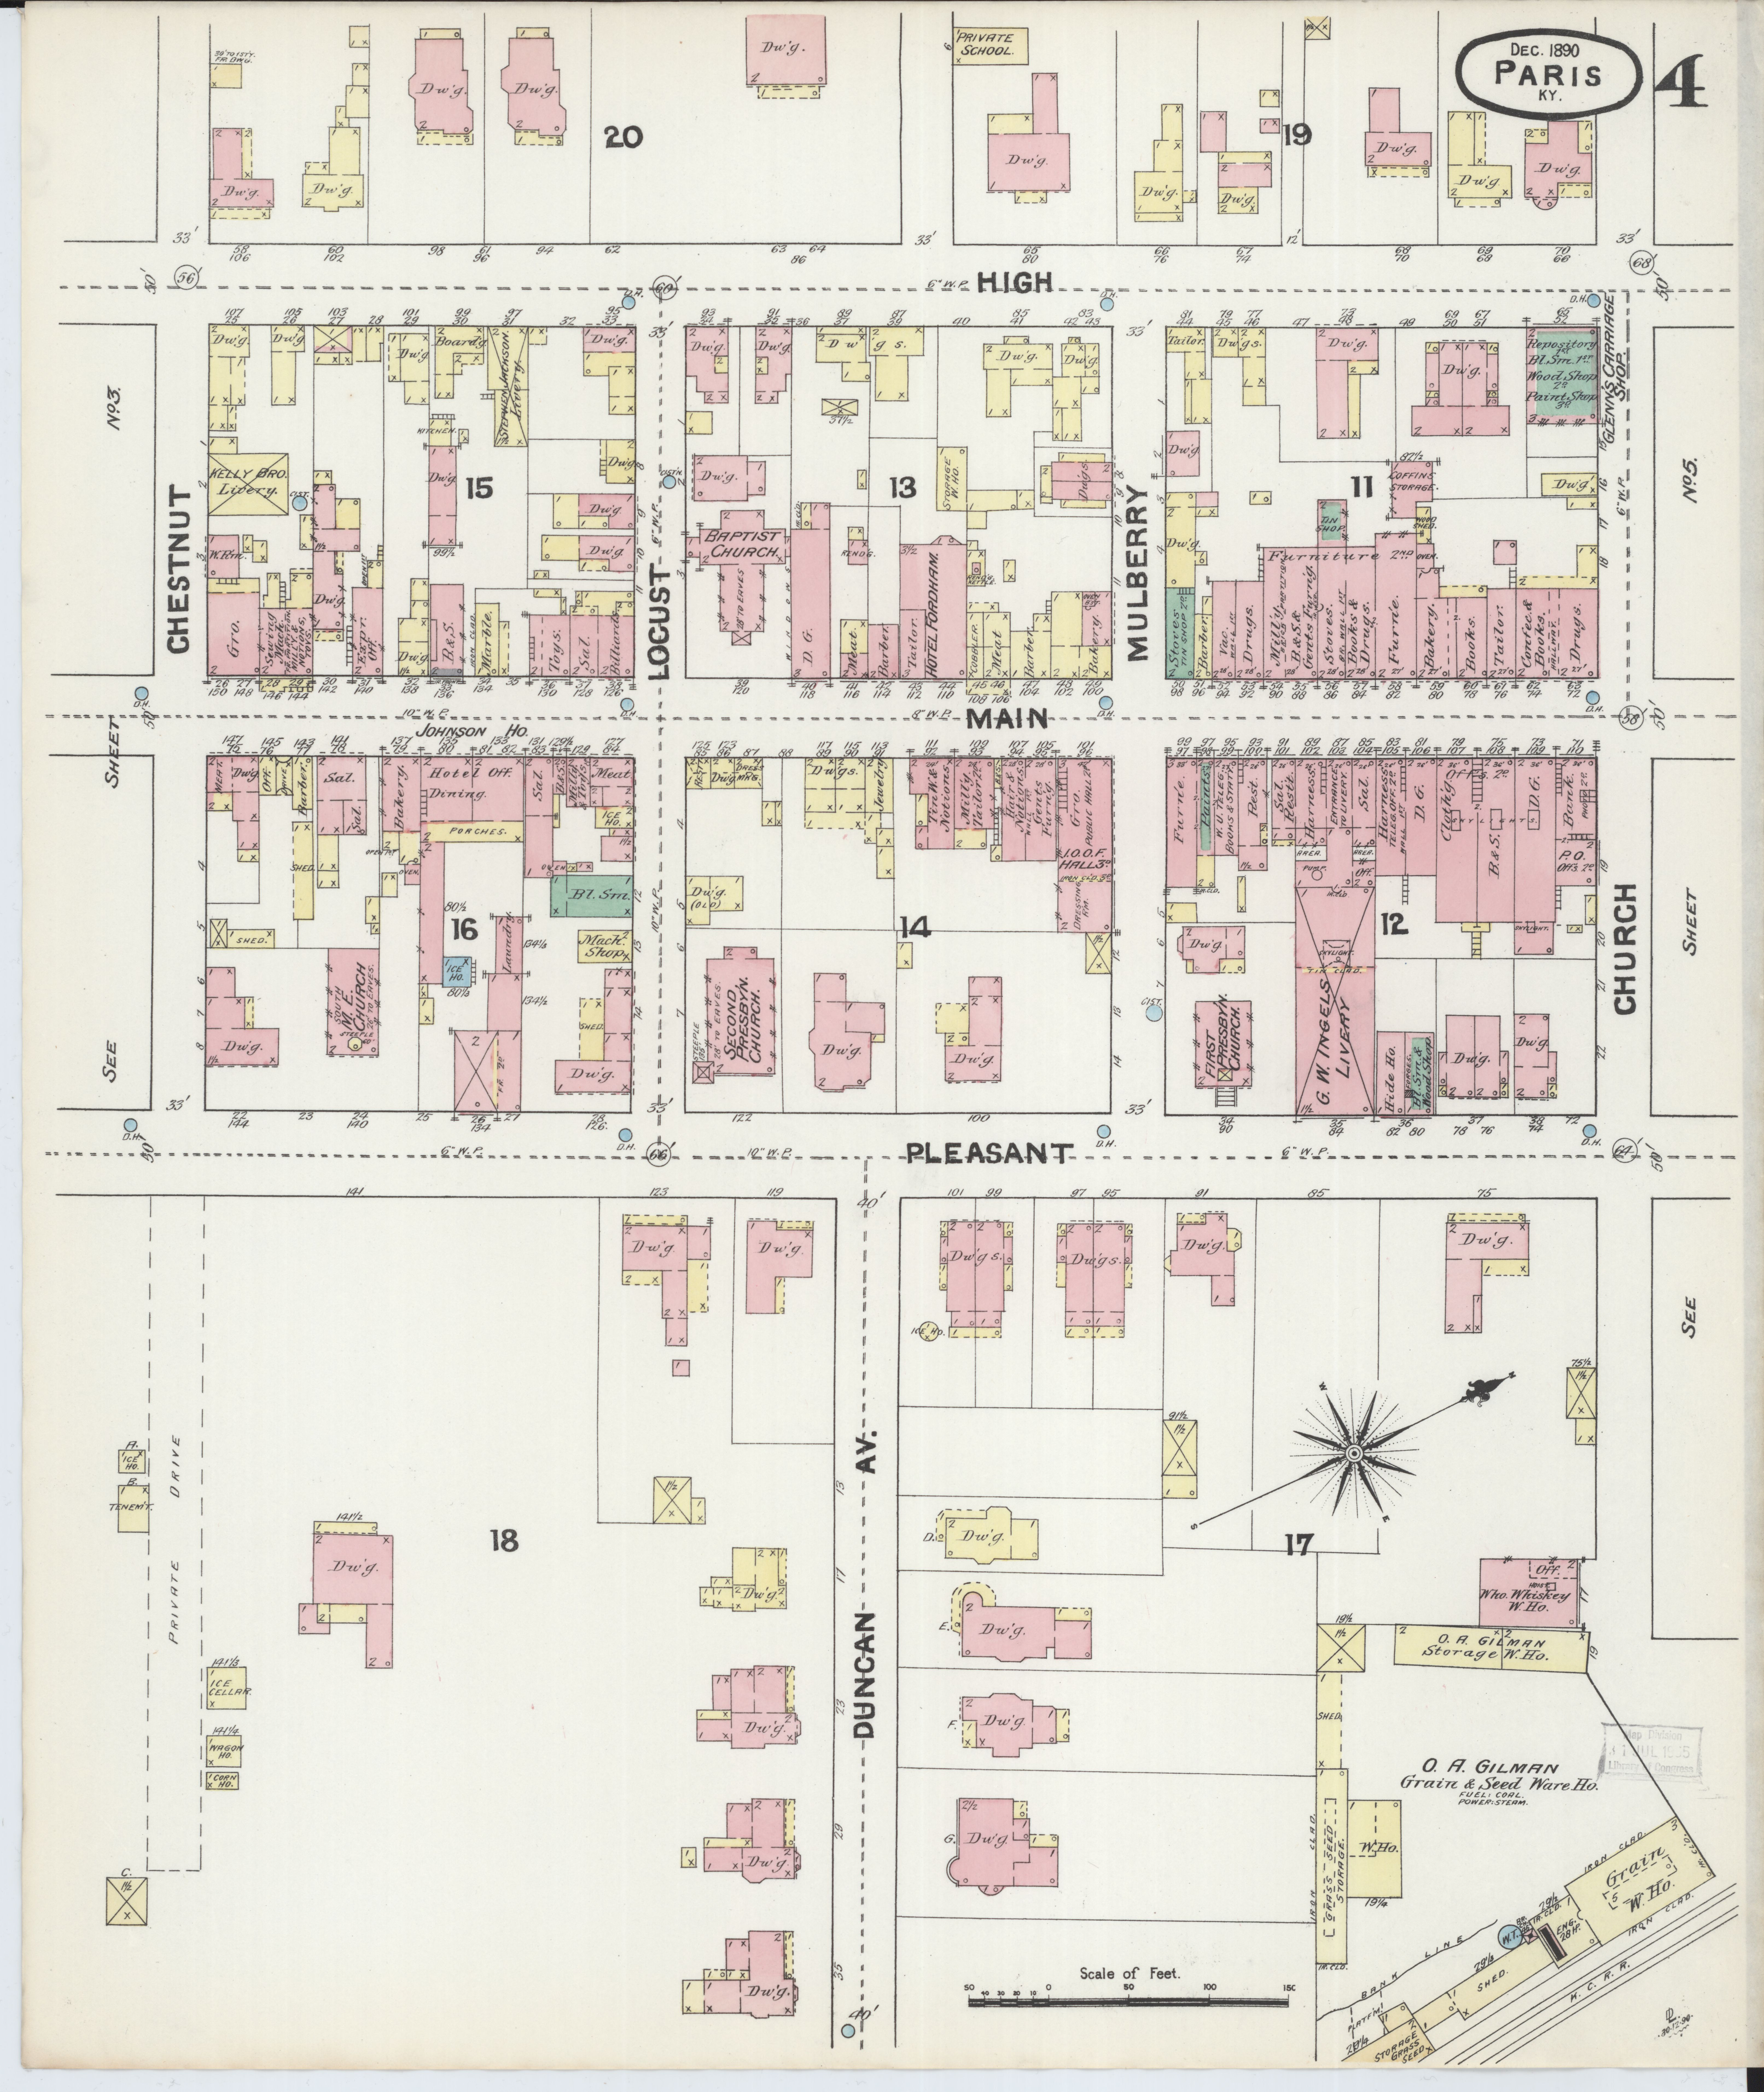 Picture of: File Sanborn Fire Insurance Map From Paris Bourbon County Kentucky Loc Sanborn03227 002 4 Jpg Wikimedia Commons